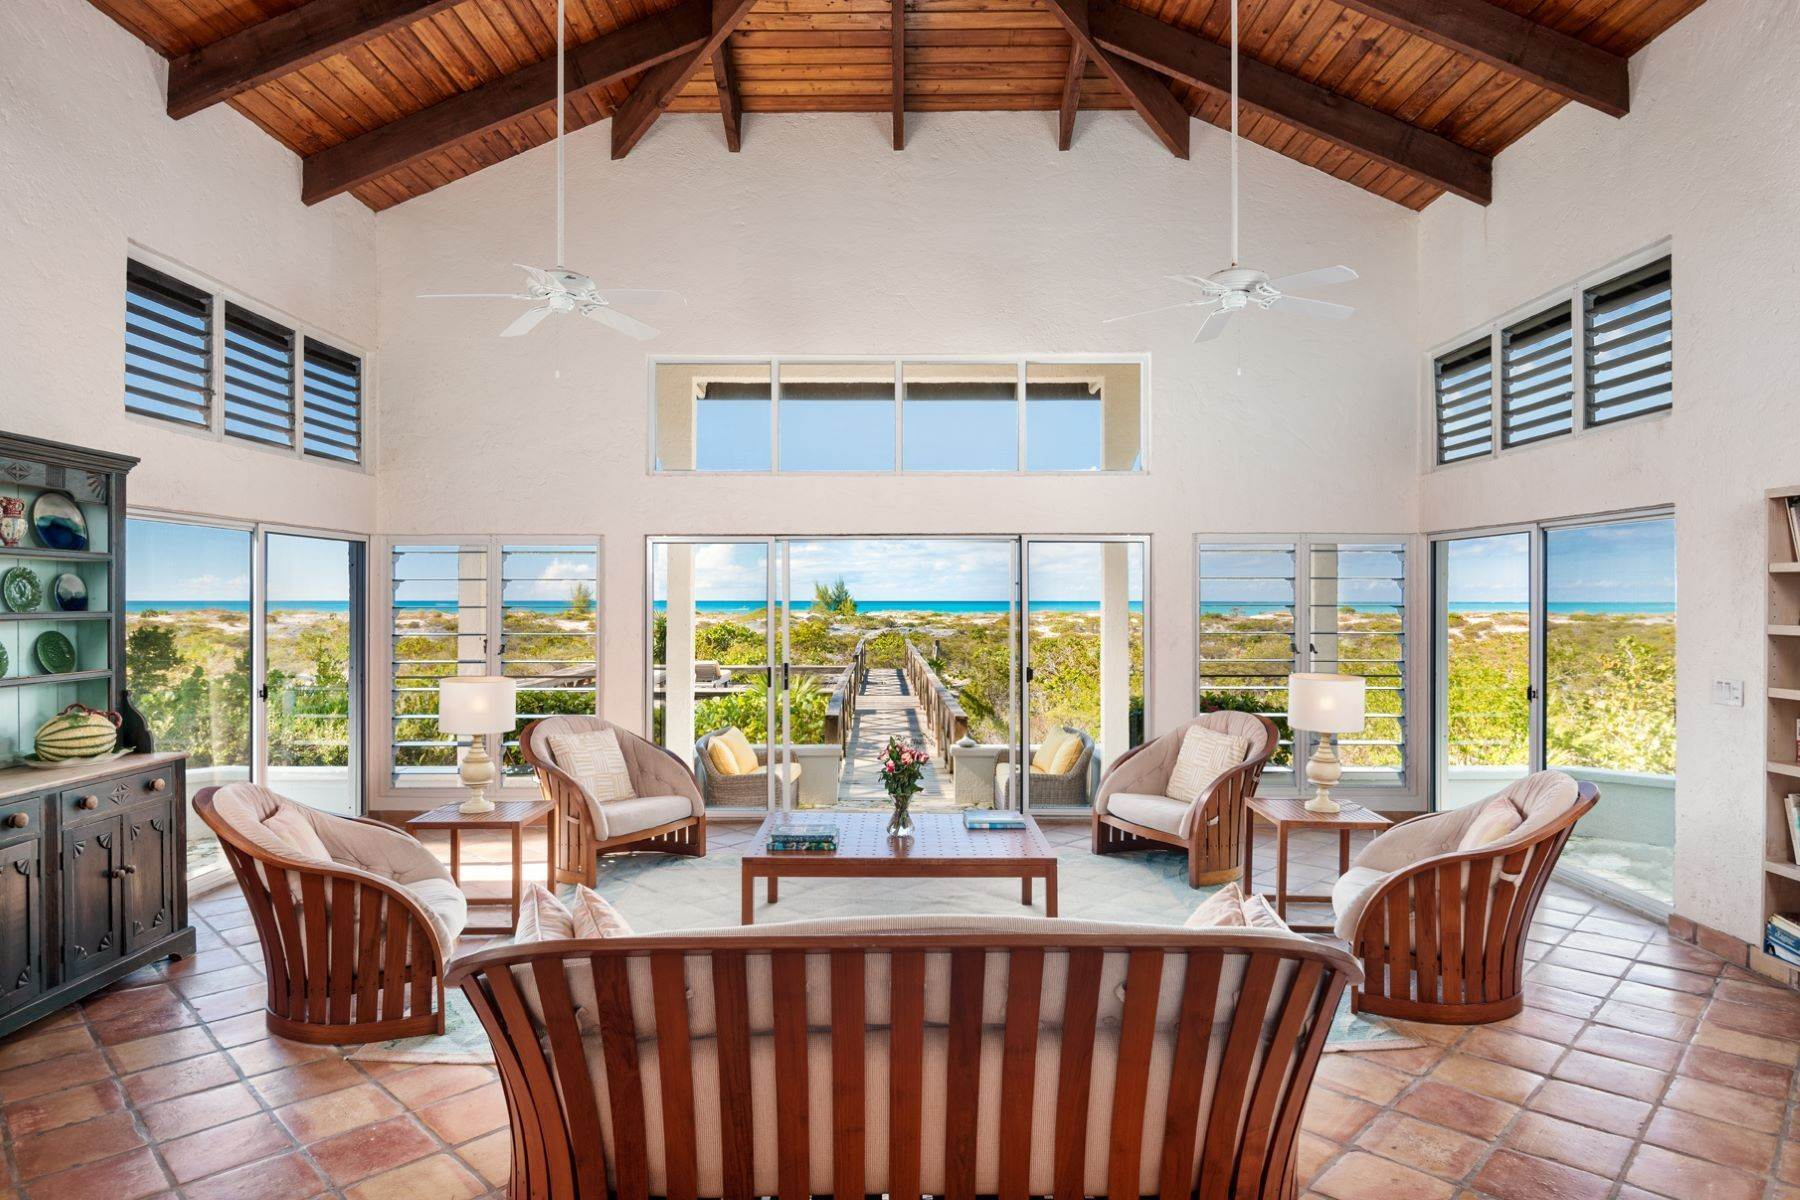 Single Family Homes for Sale at Casuarinas Cottage Pine Cay Pine Cay, Pine Cay TCI BWI Turks And Caicos Islands